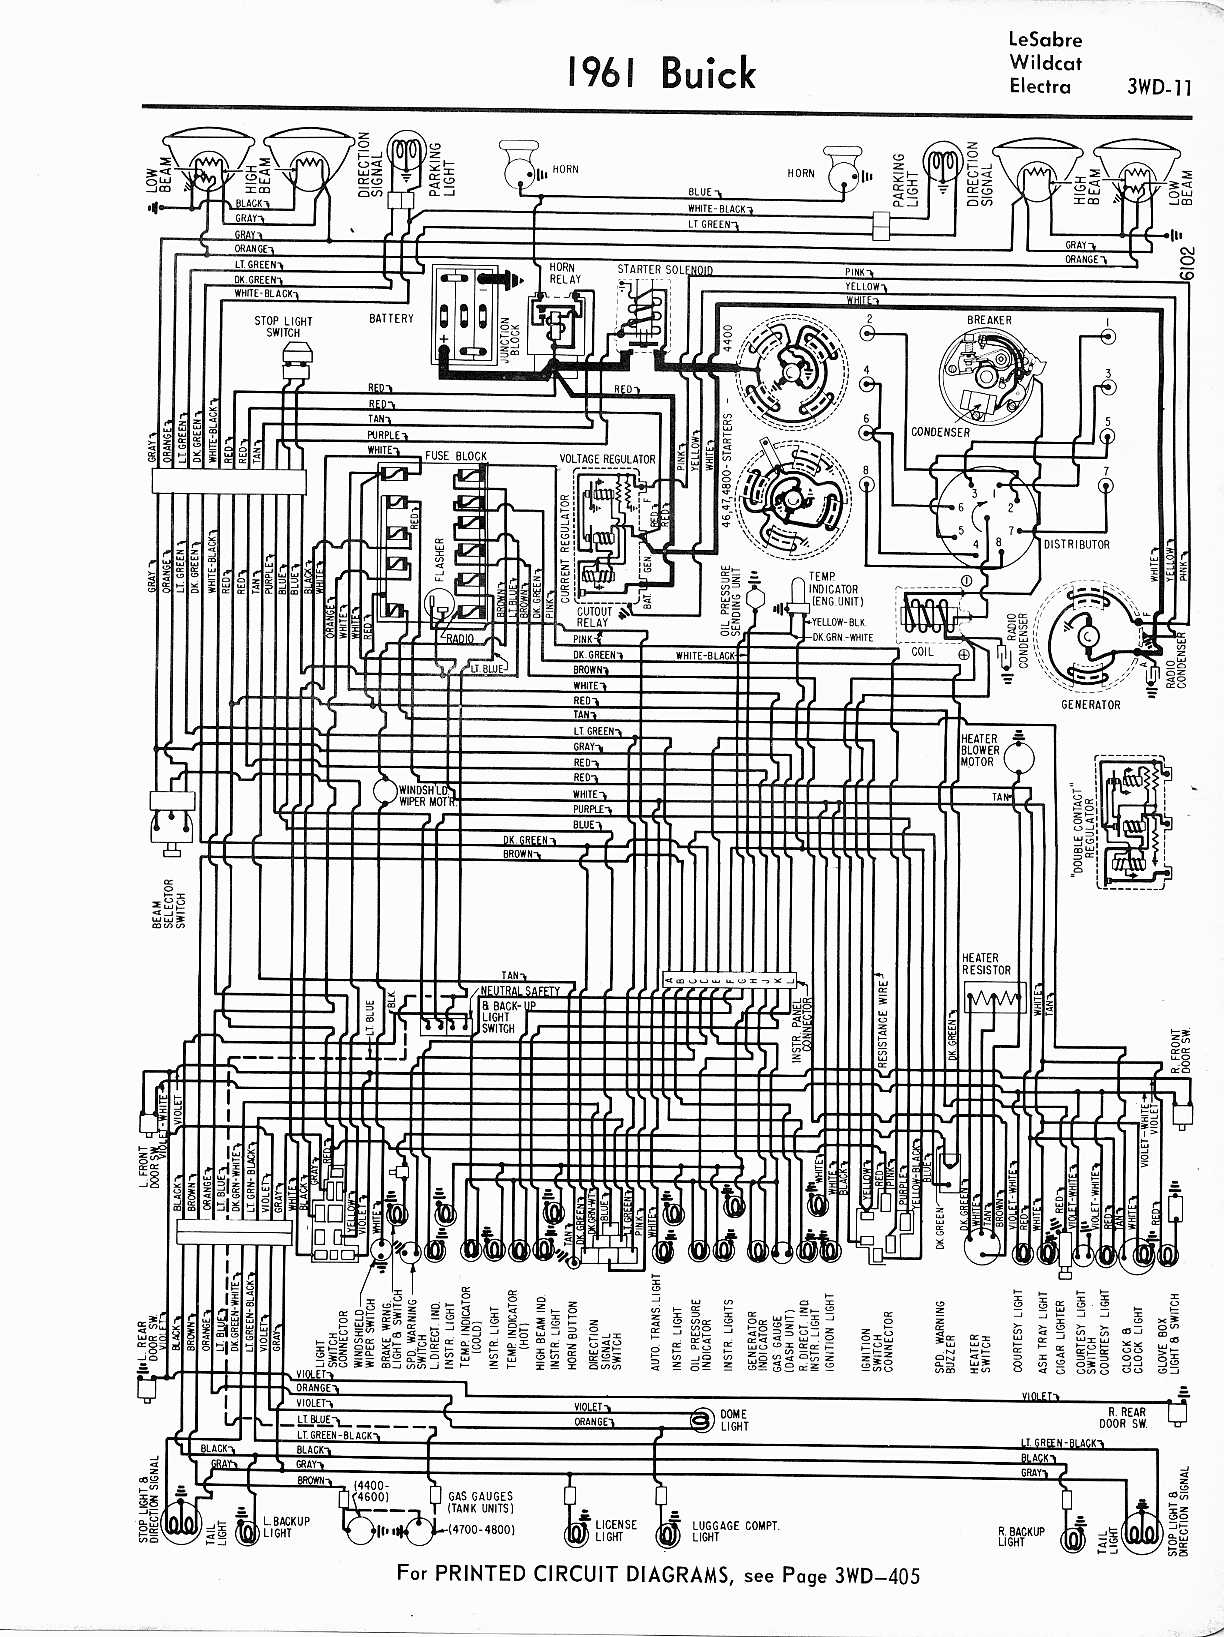 1994 Buick Century Wiring Diagram Reveolution Of 1995 3 1l Engine Electra Detailed Schematics Rh Jvpacks Com Fuel Pump Relay